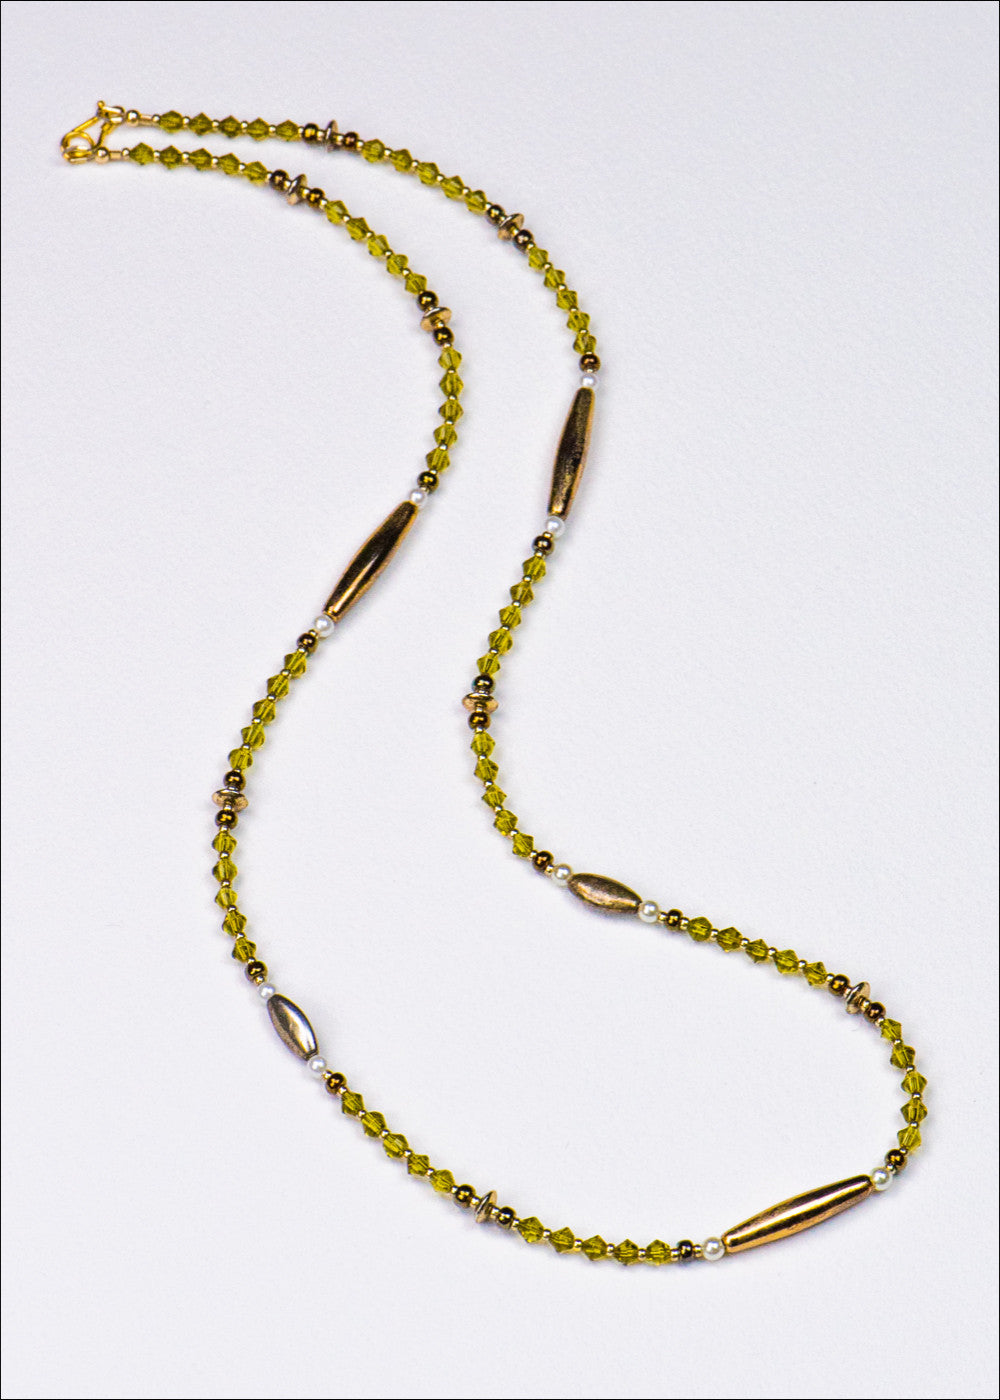 Light Olive Glass and Metal Necklace